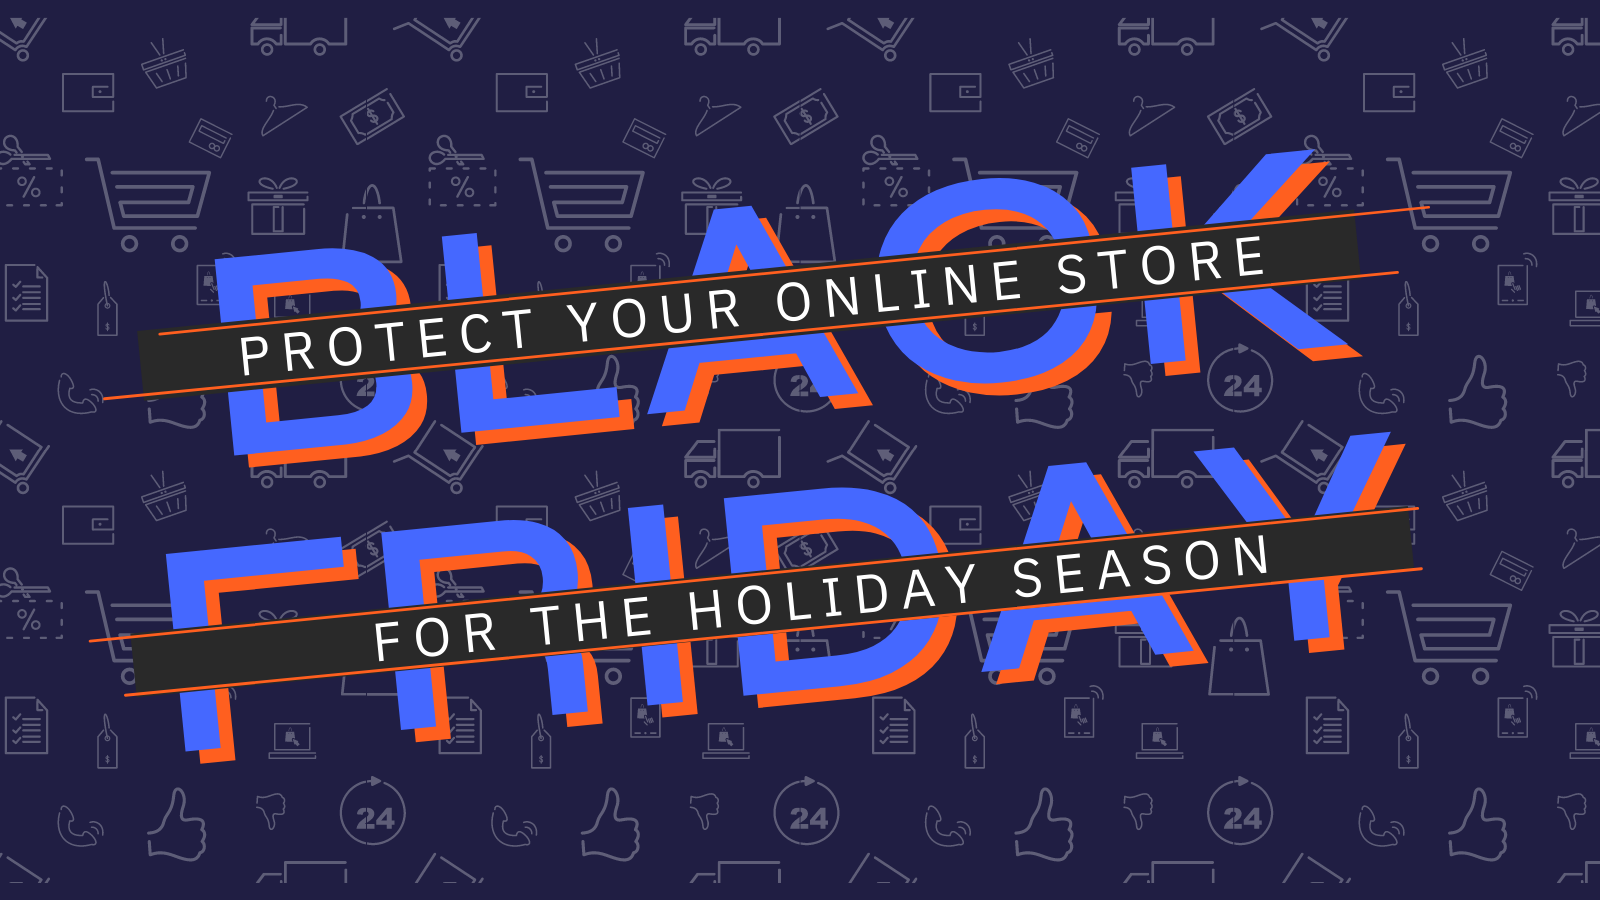 Prepare Your Online Store for the Holidays